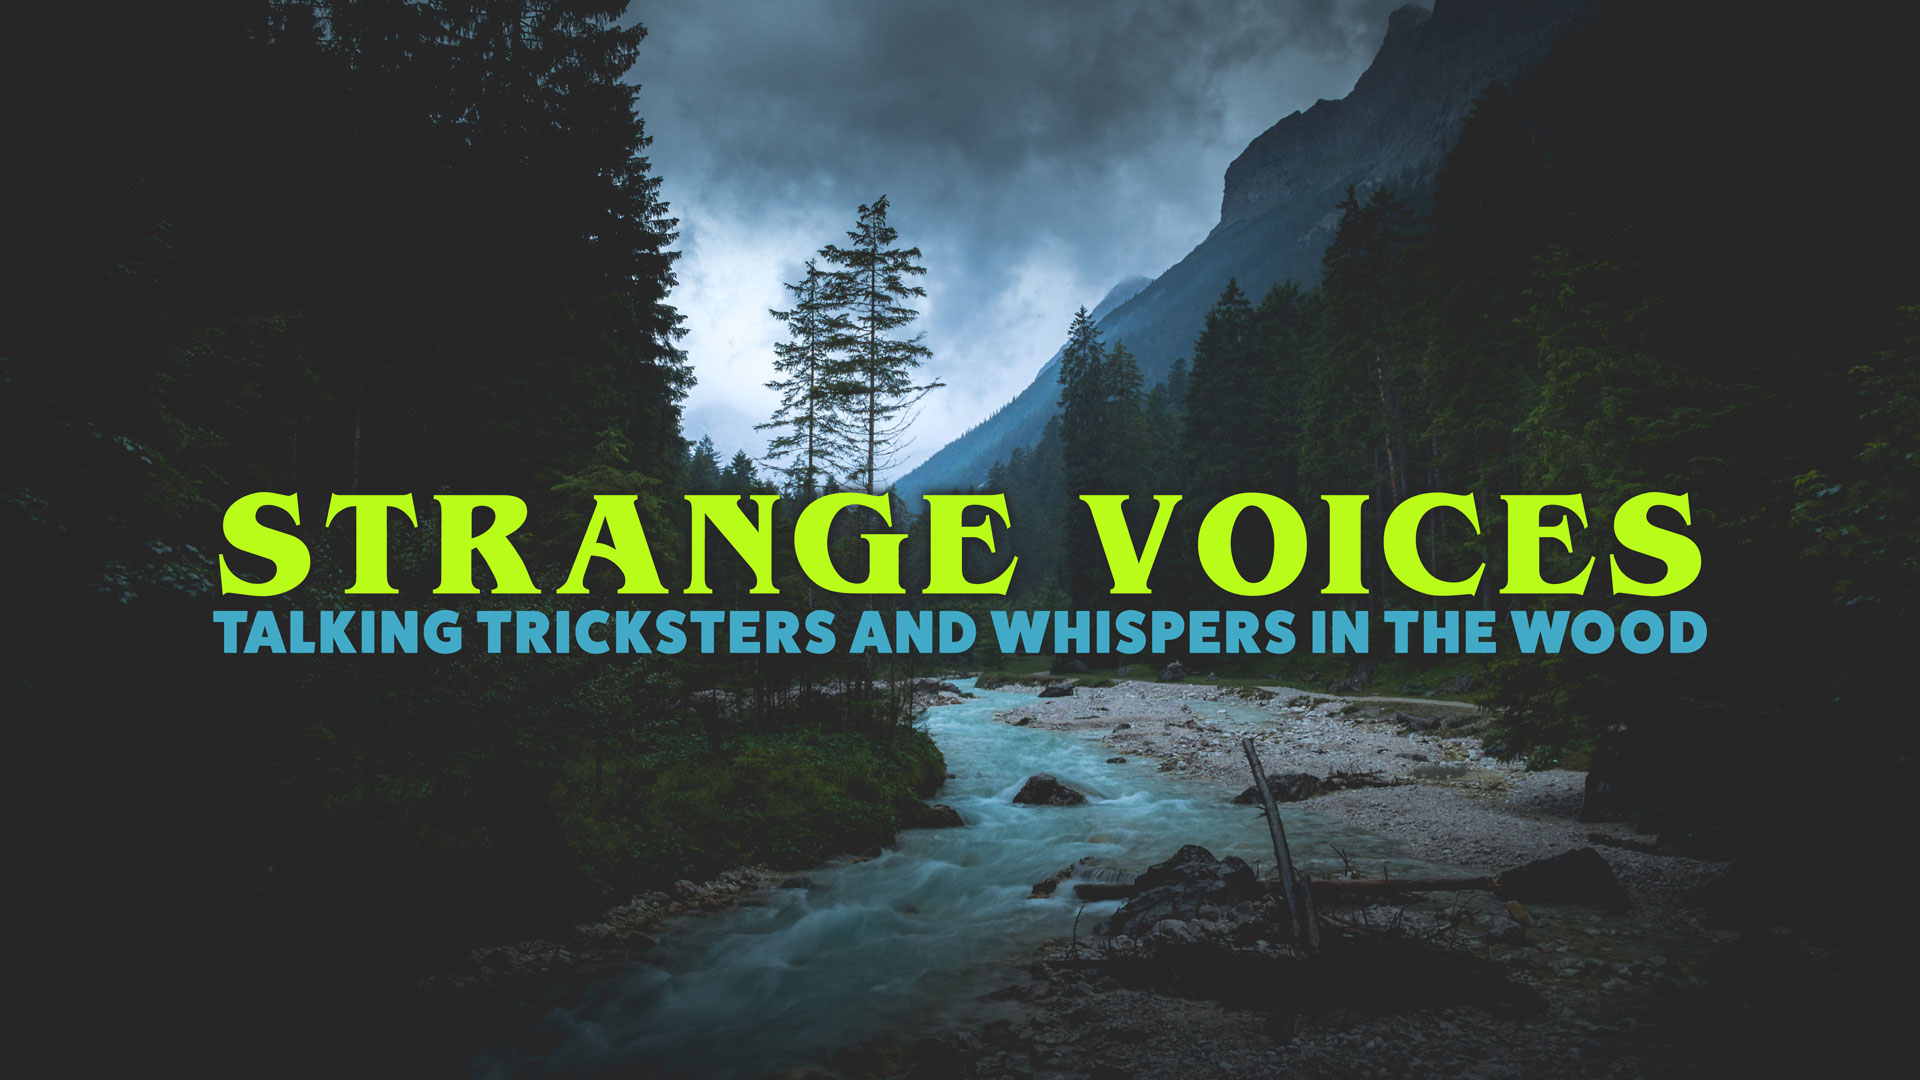 STRANGE-VOICES-Disembodied-Voices-Missing-411-Podcast